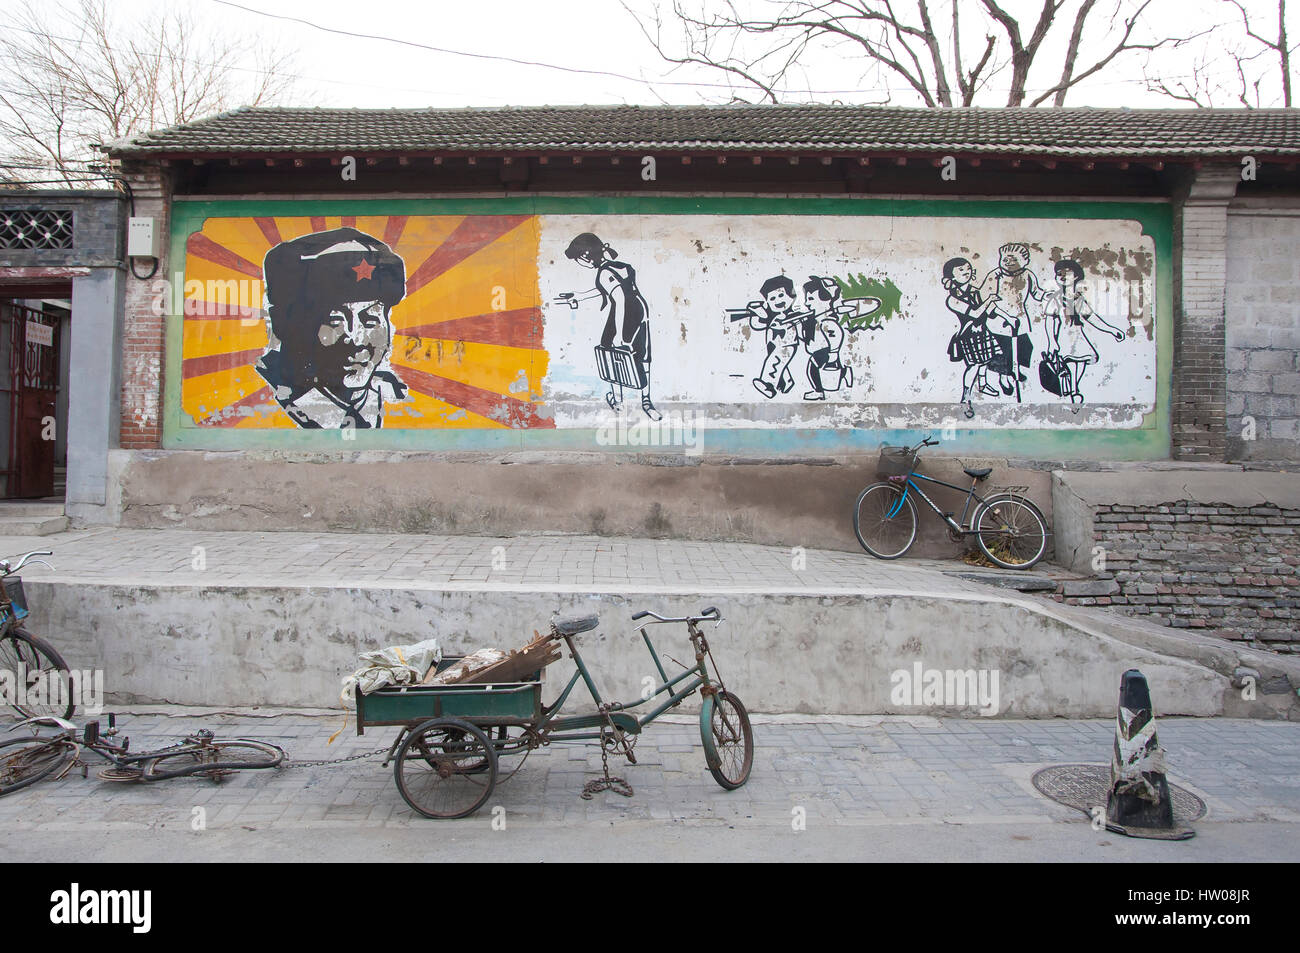 Hutong wall mural featuring Chinese communist hero Lei Feng in a residential street in Beijing - Stock Image